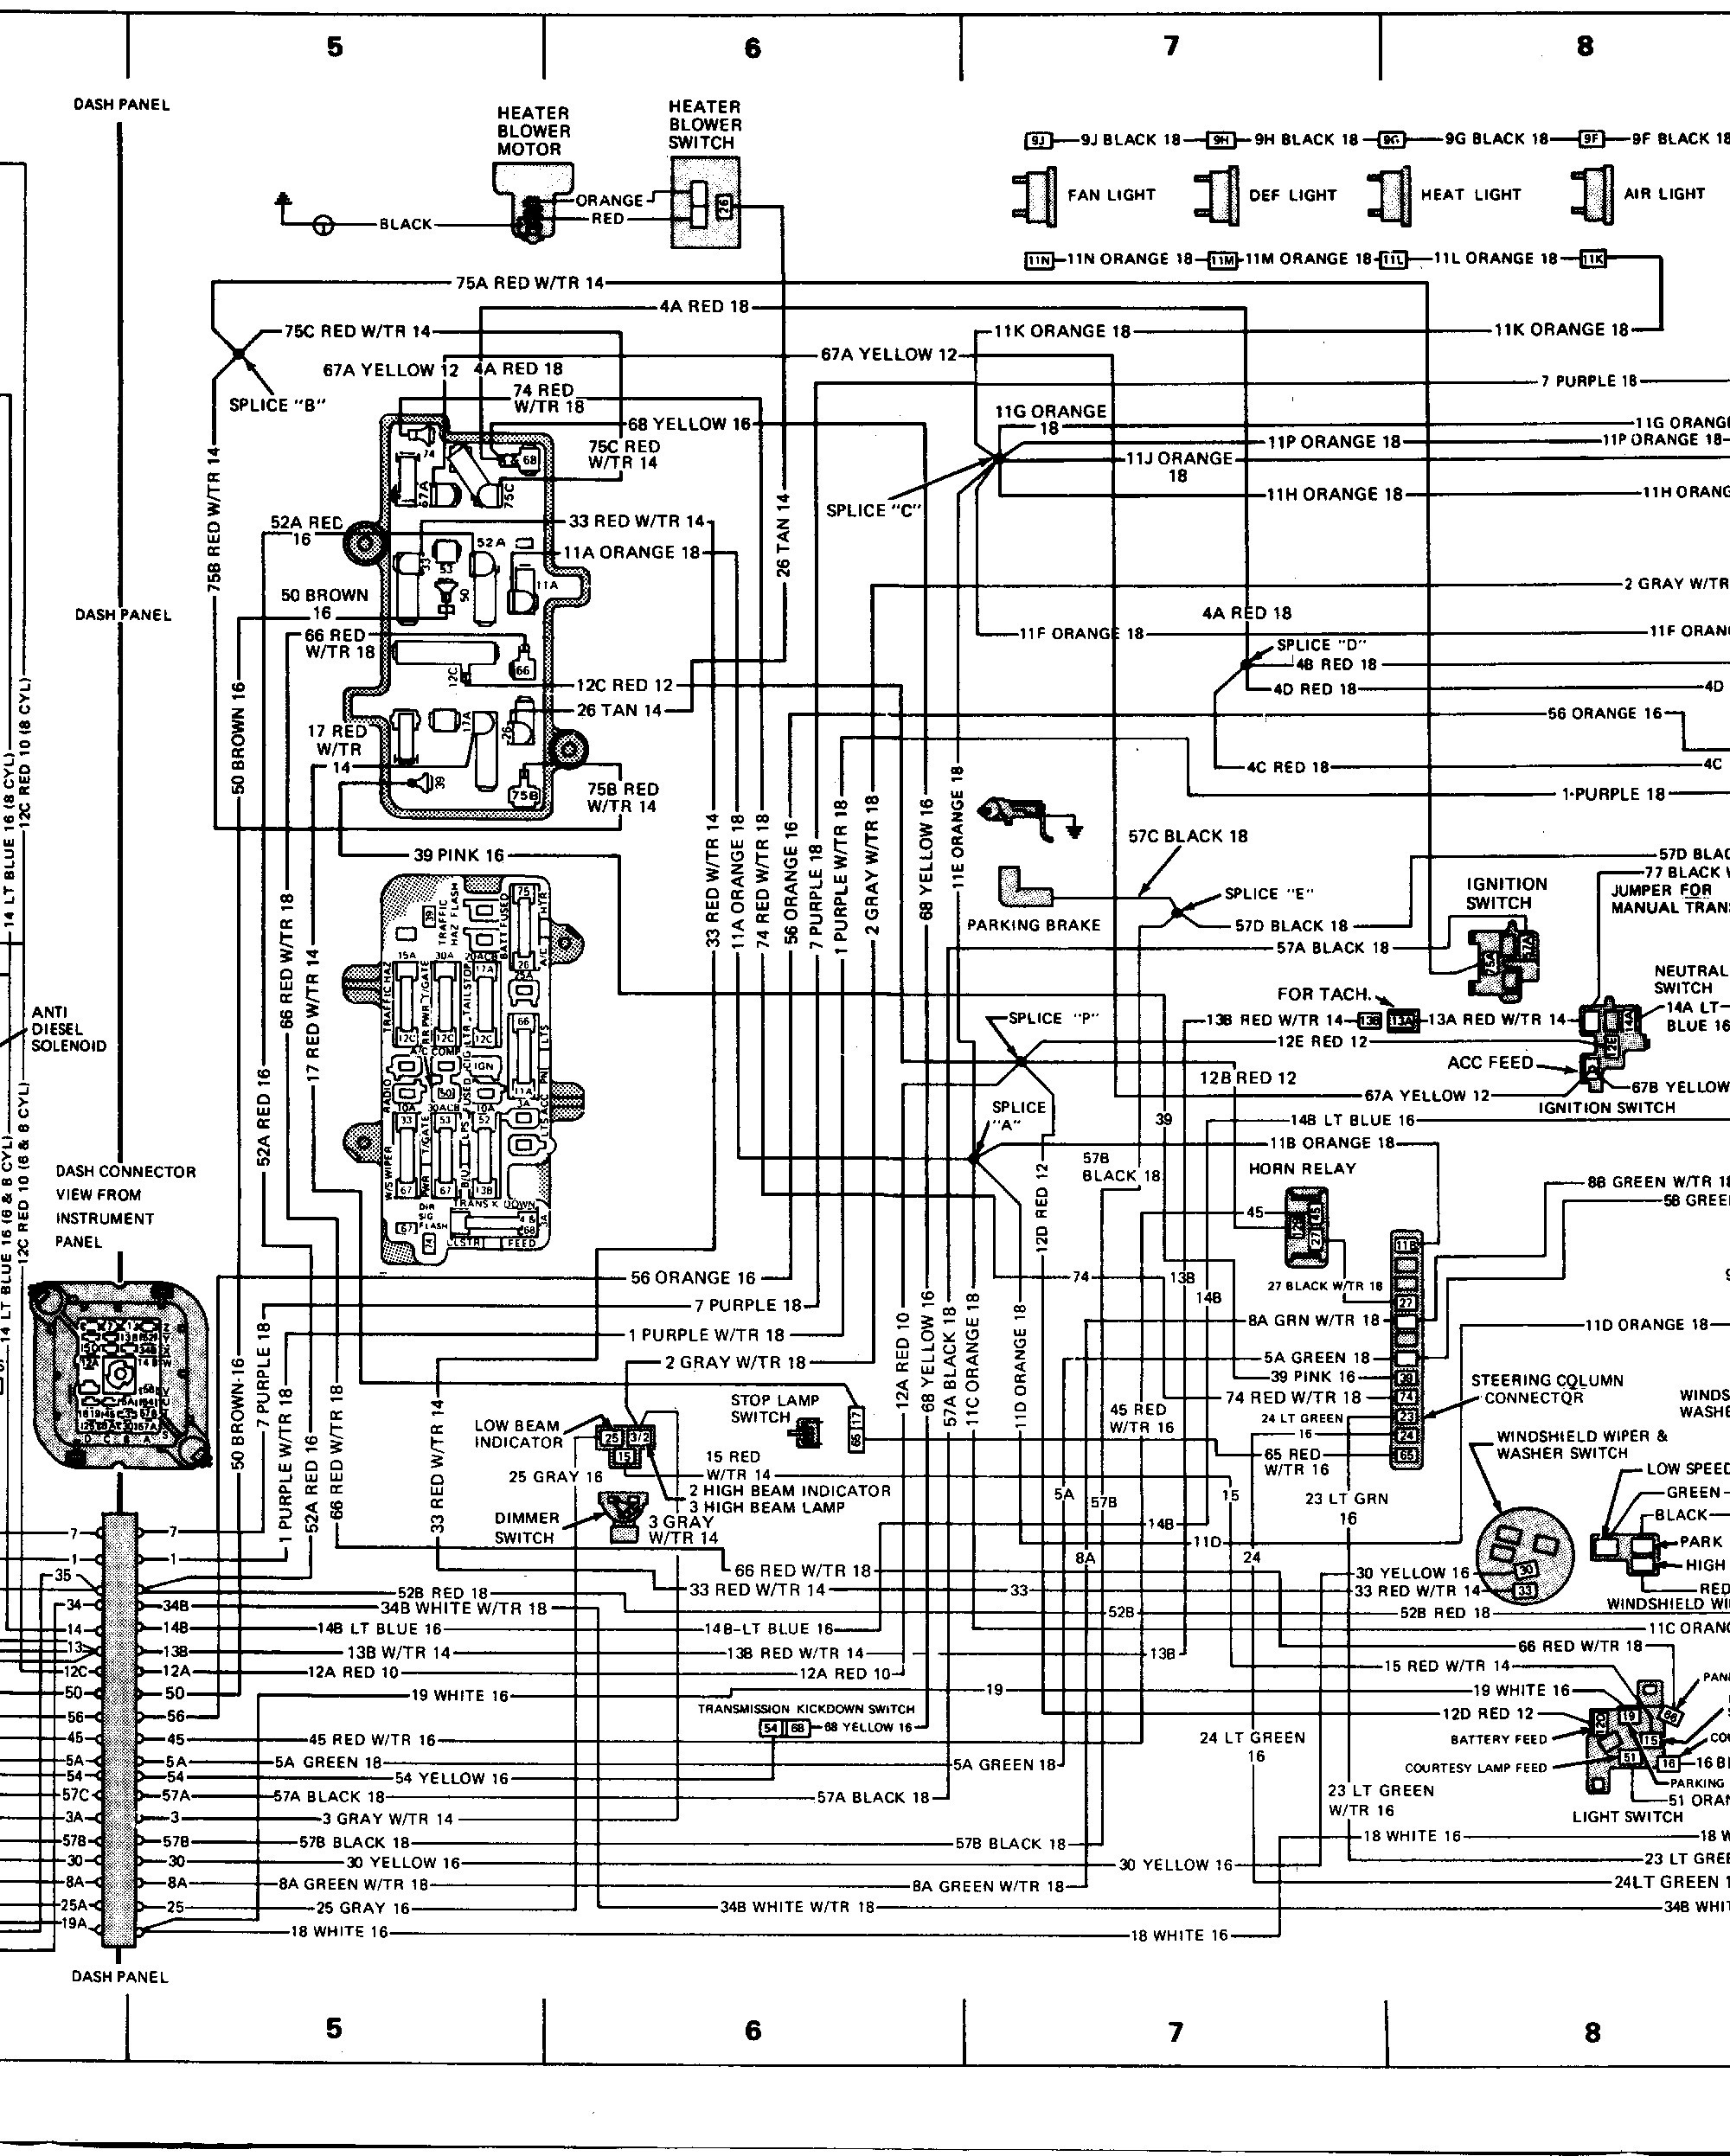 jeep cj7 i6 engine diagram wiring diagrams interval Jeep CJ7 Driveline Diagram